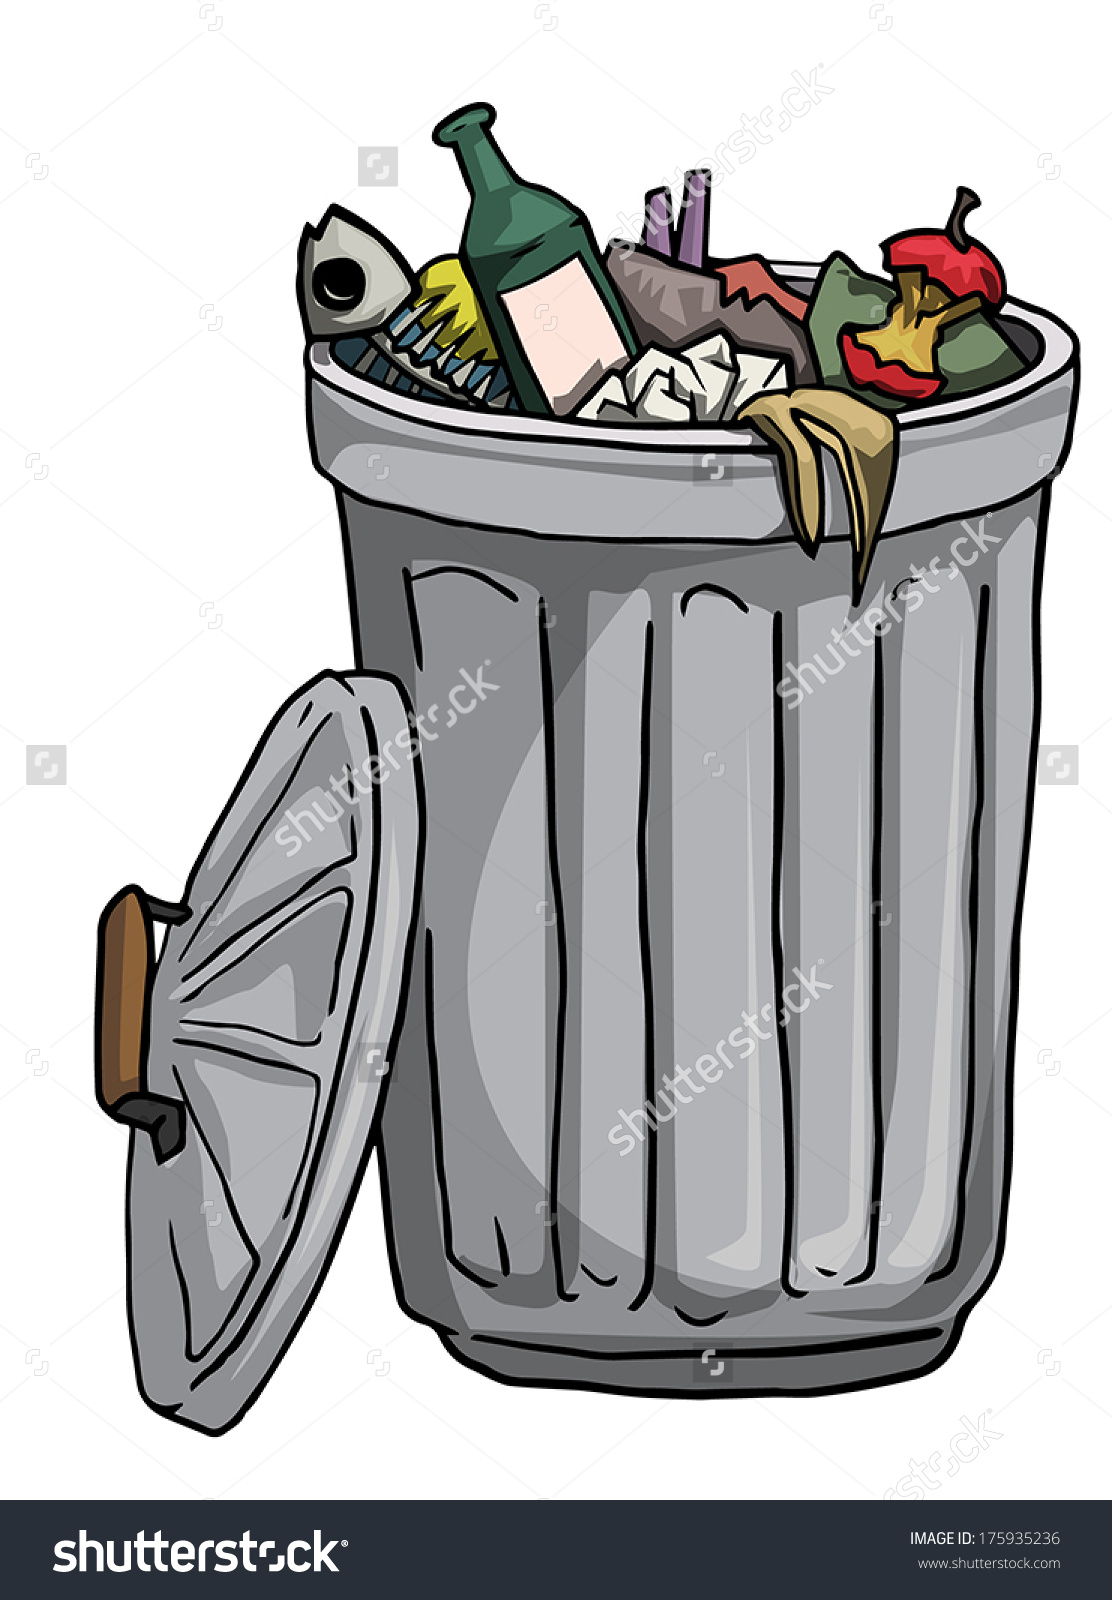 Trash can filled clipart picture royalty free Trash Can Full Rubbish Vector Illustration Stock Vector 175935236 ... picture royalty free